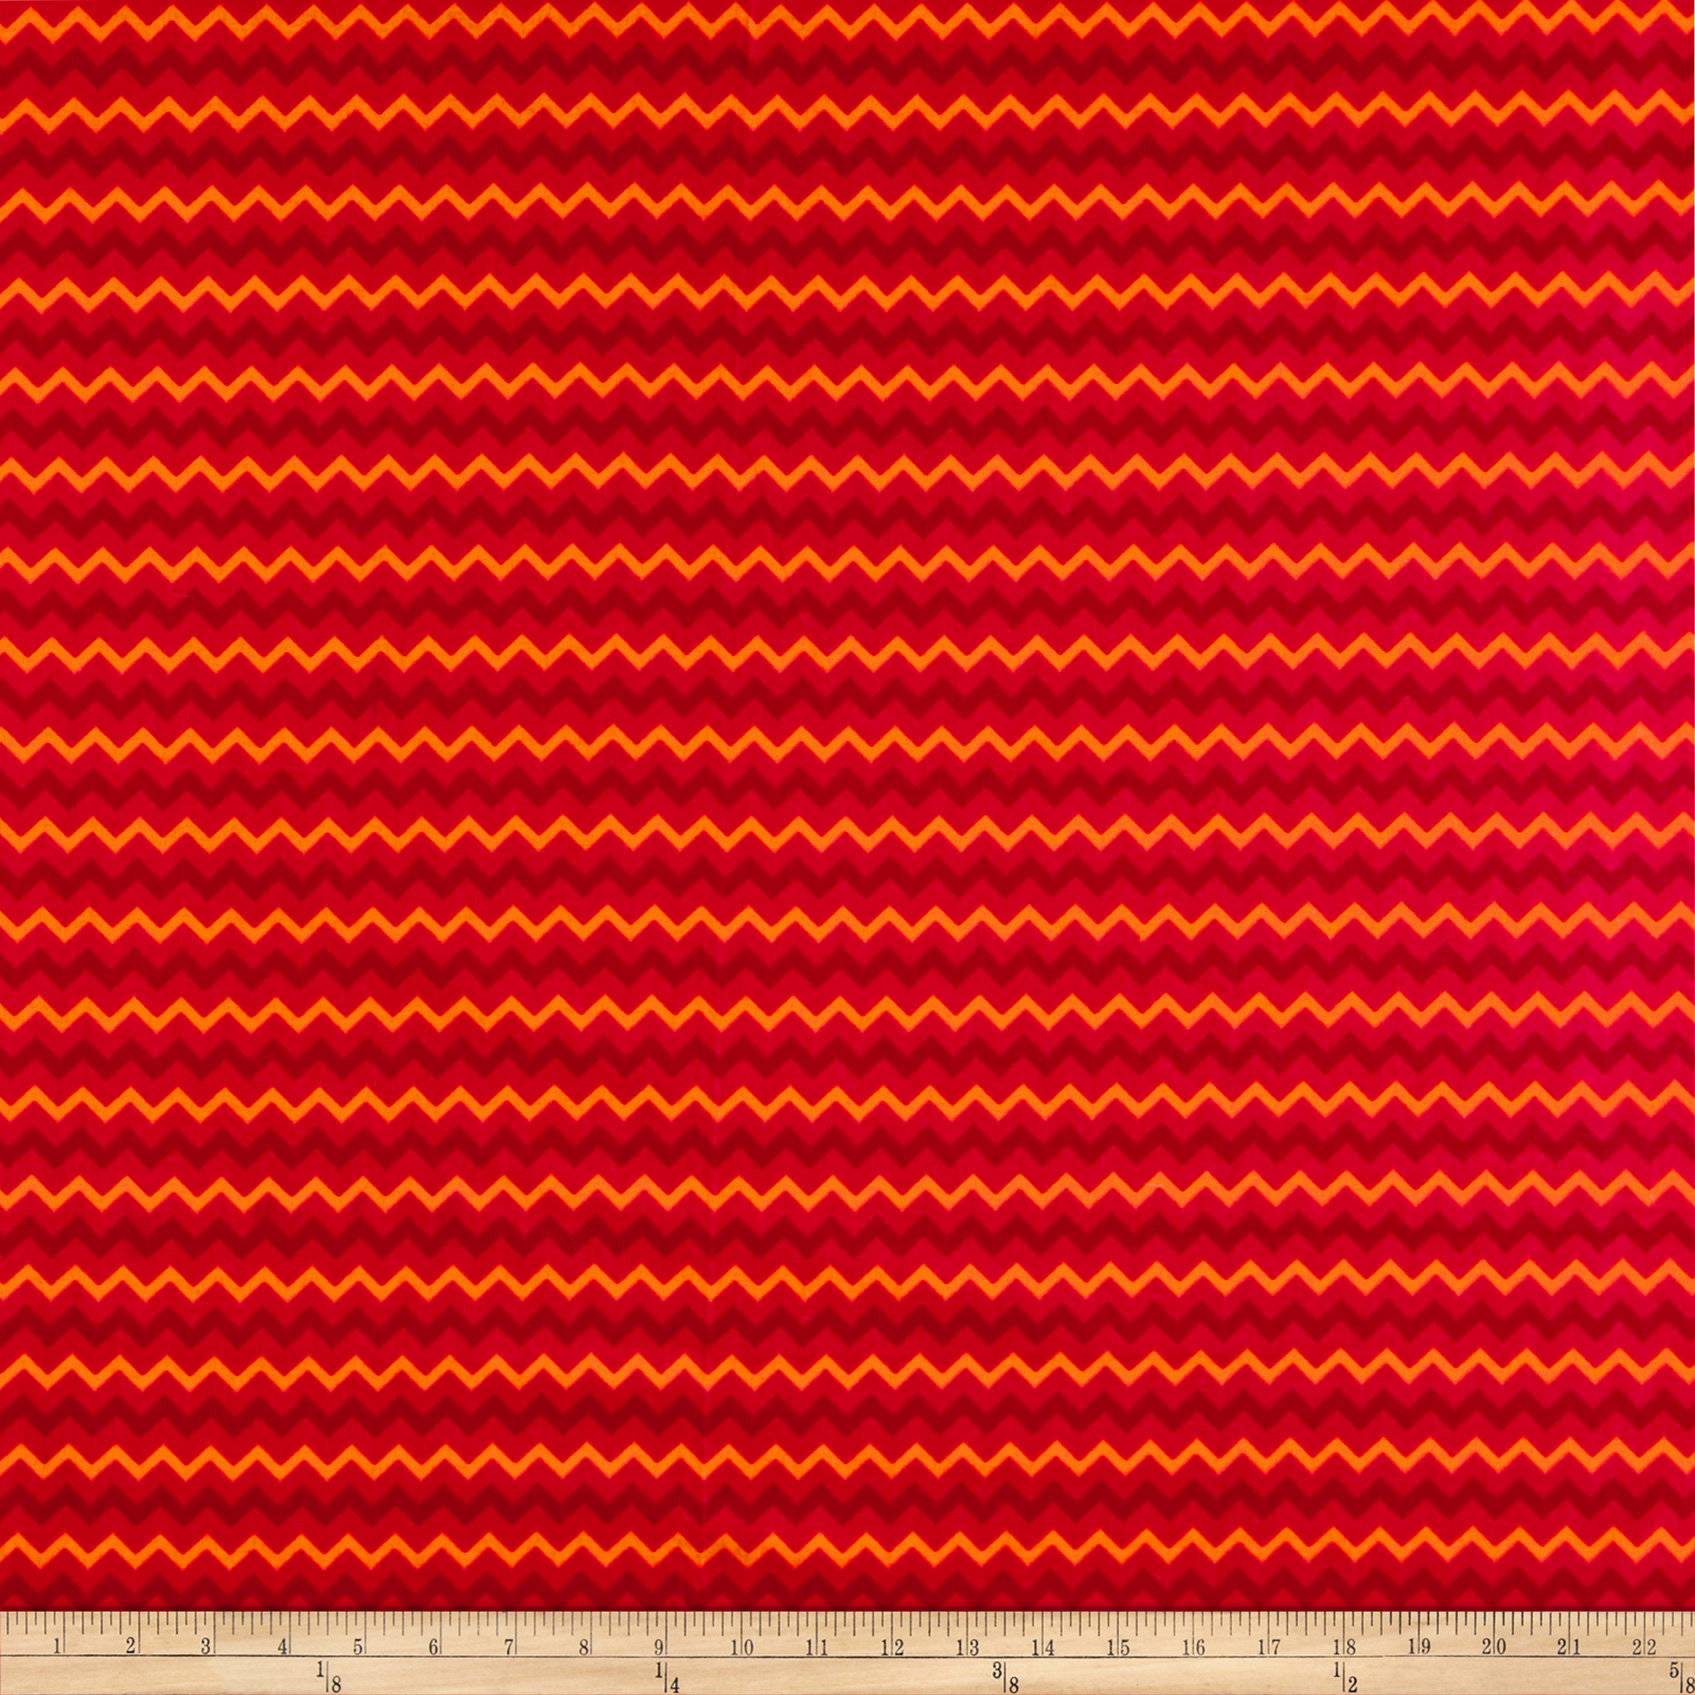 Springs Creative Tonal Chevron Flame Fabric